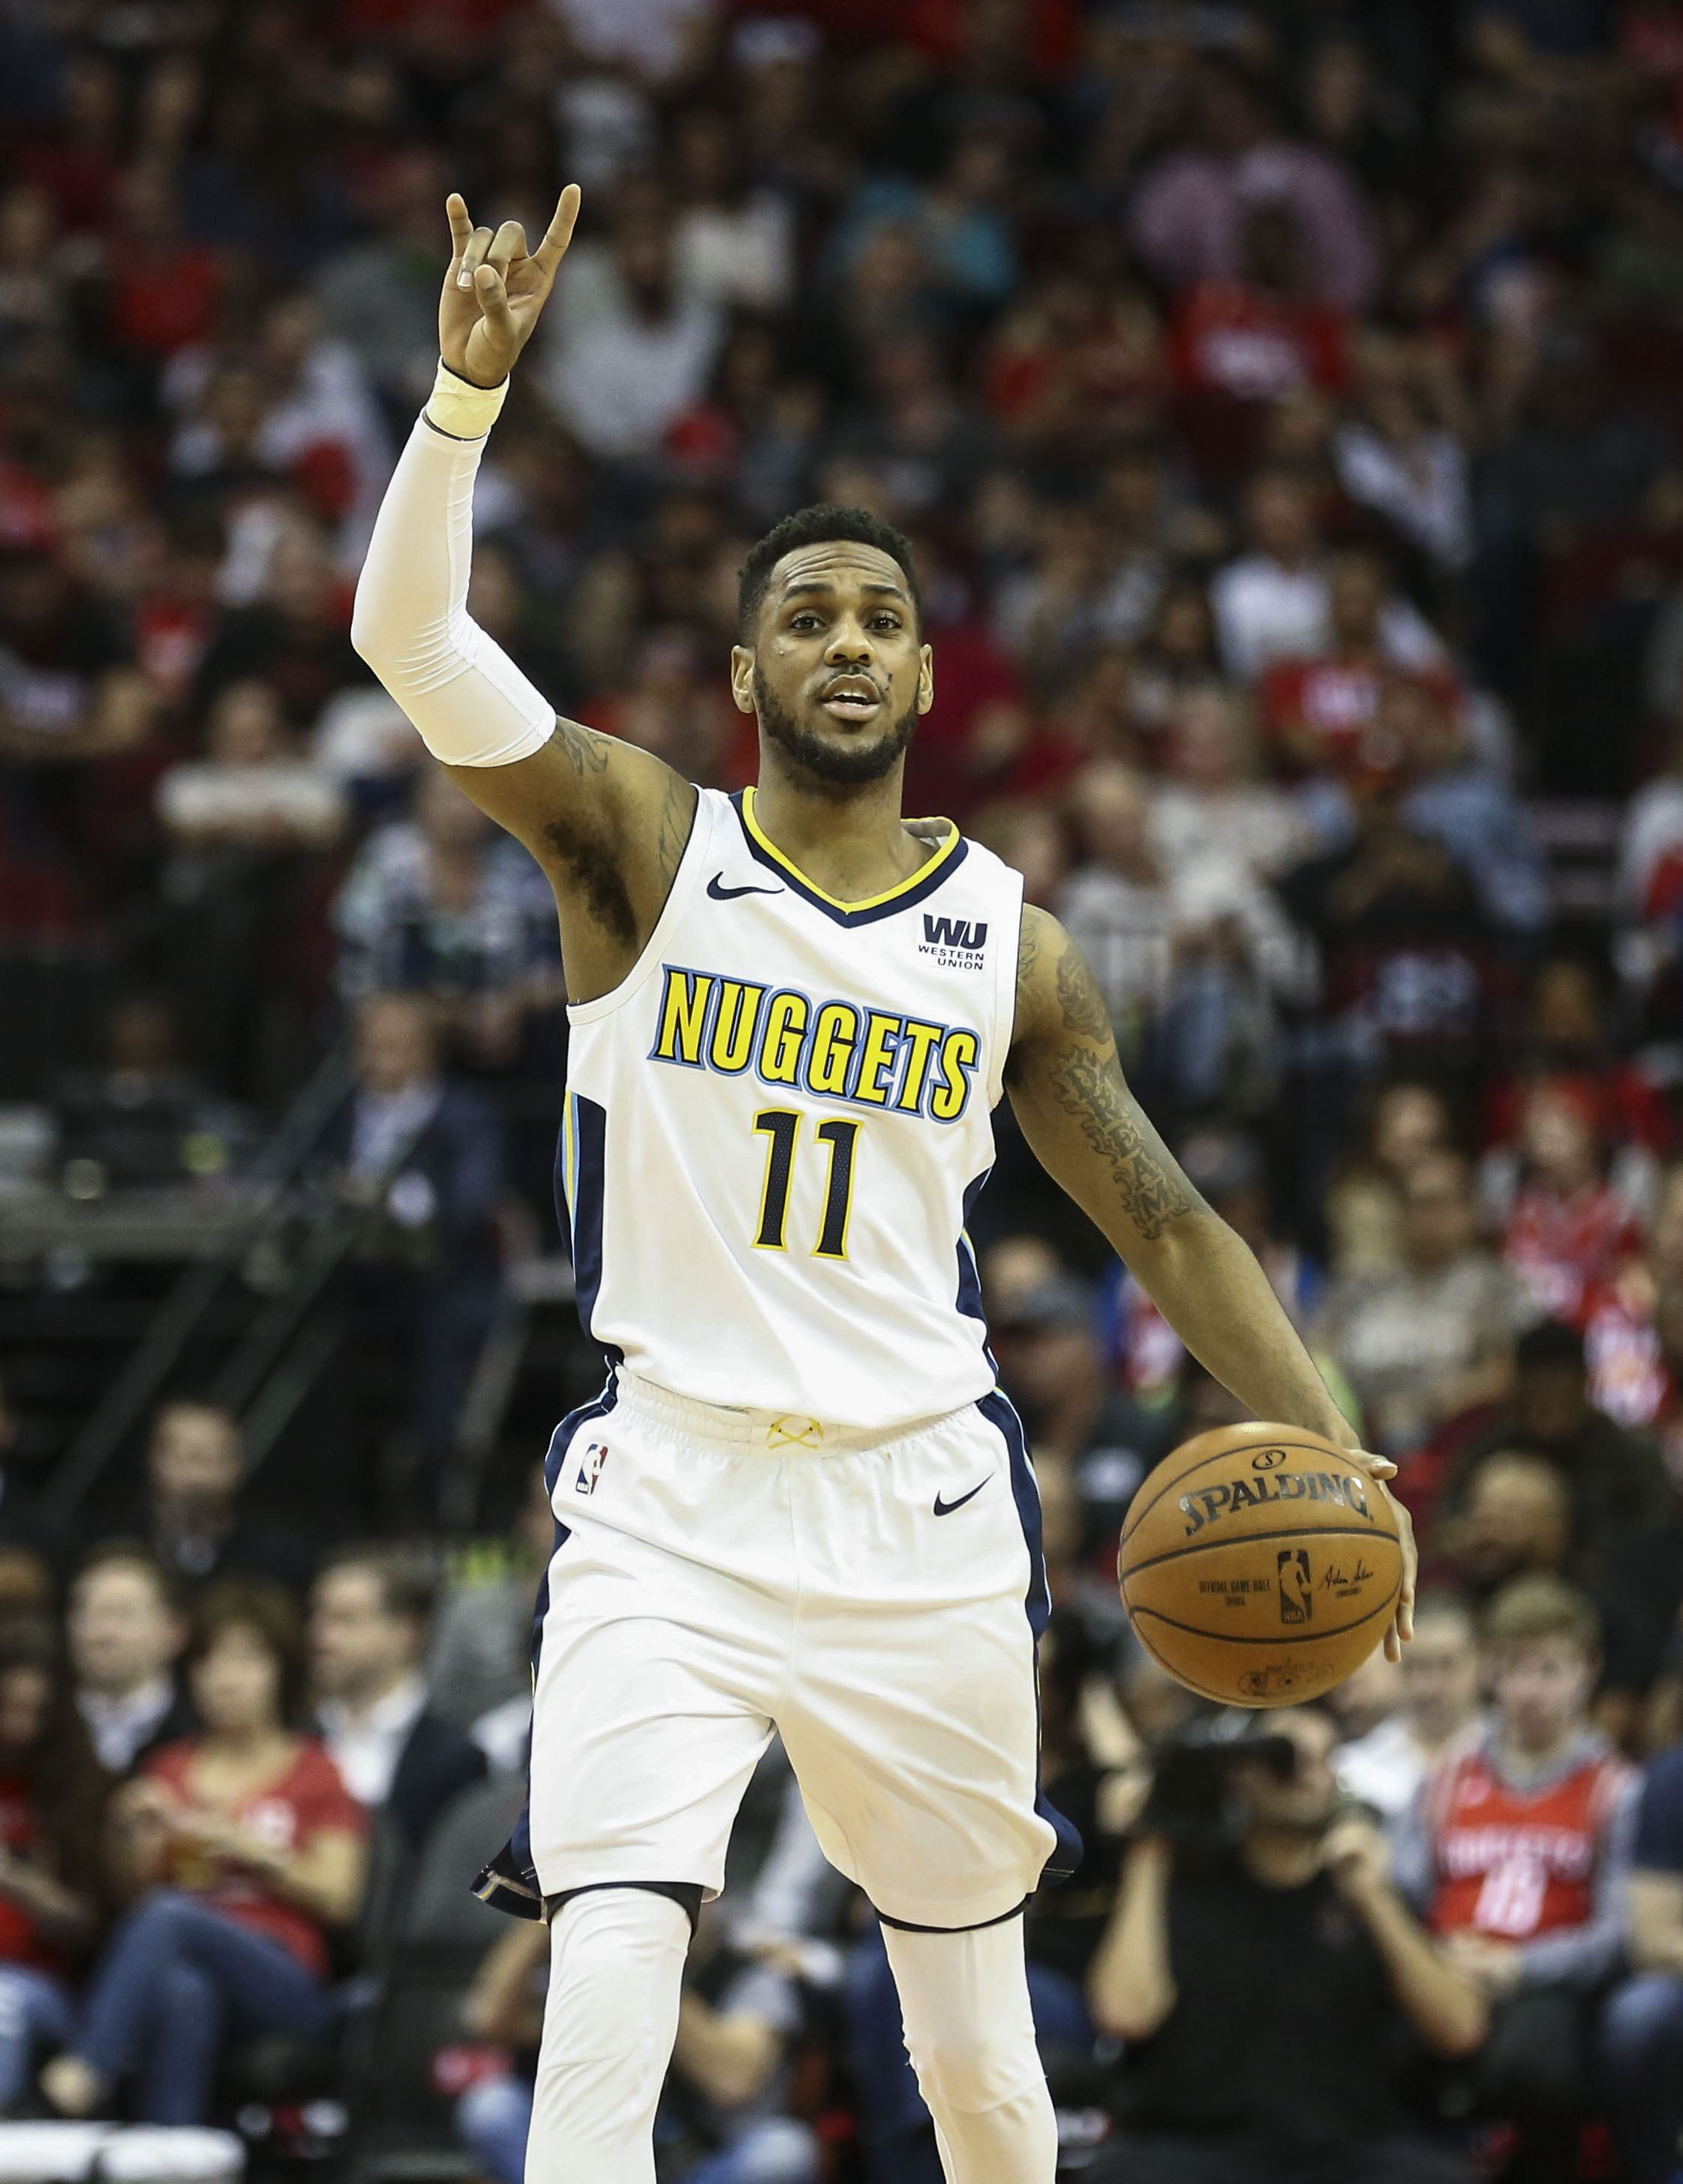 Celtics and Nuggets meet in a late game in Vegas - CelticsBlog